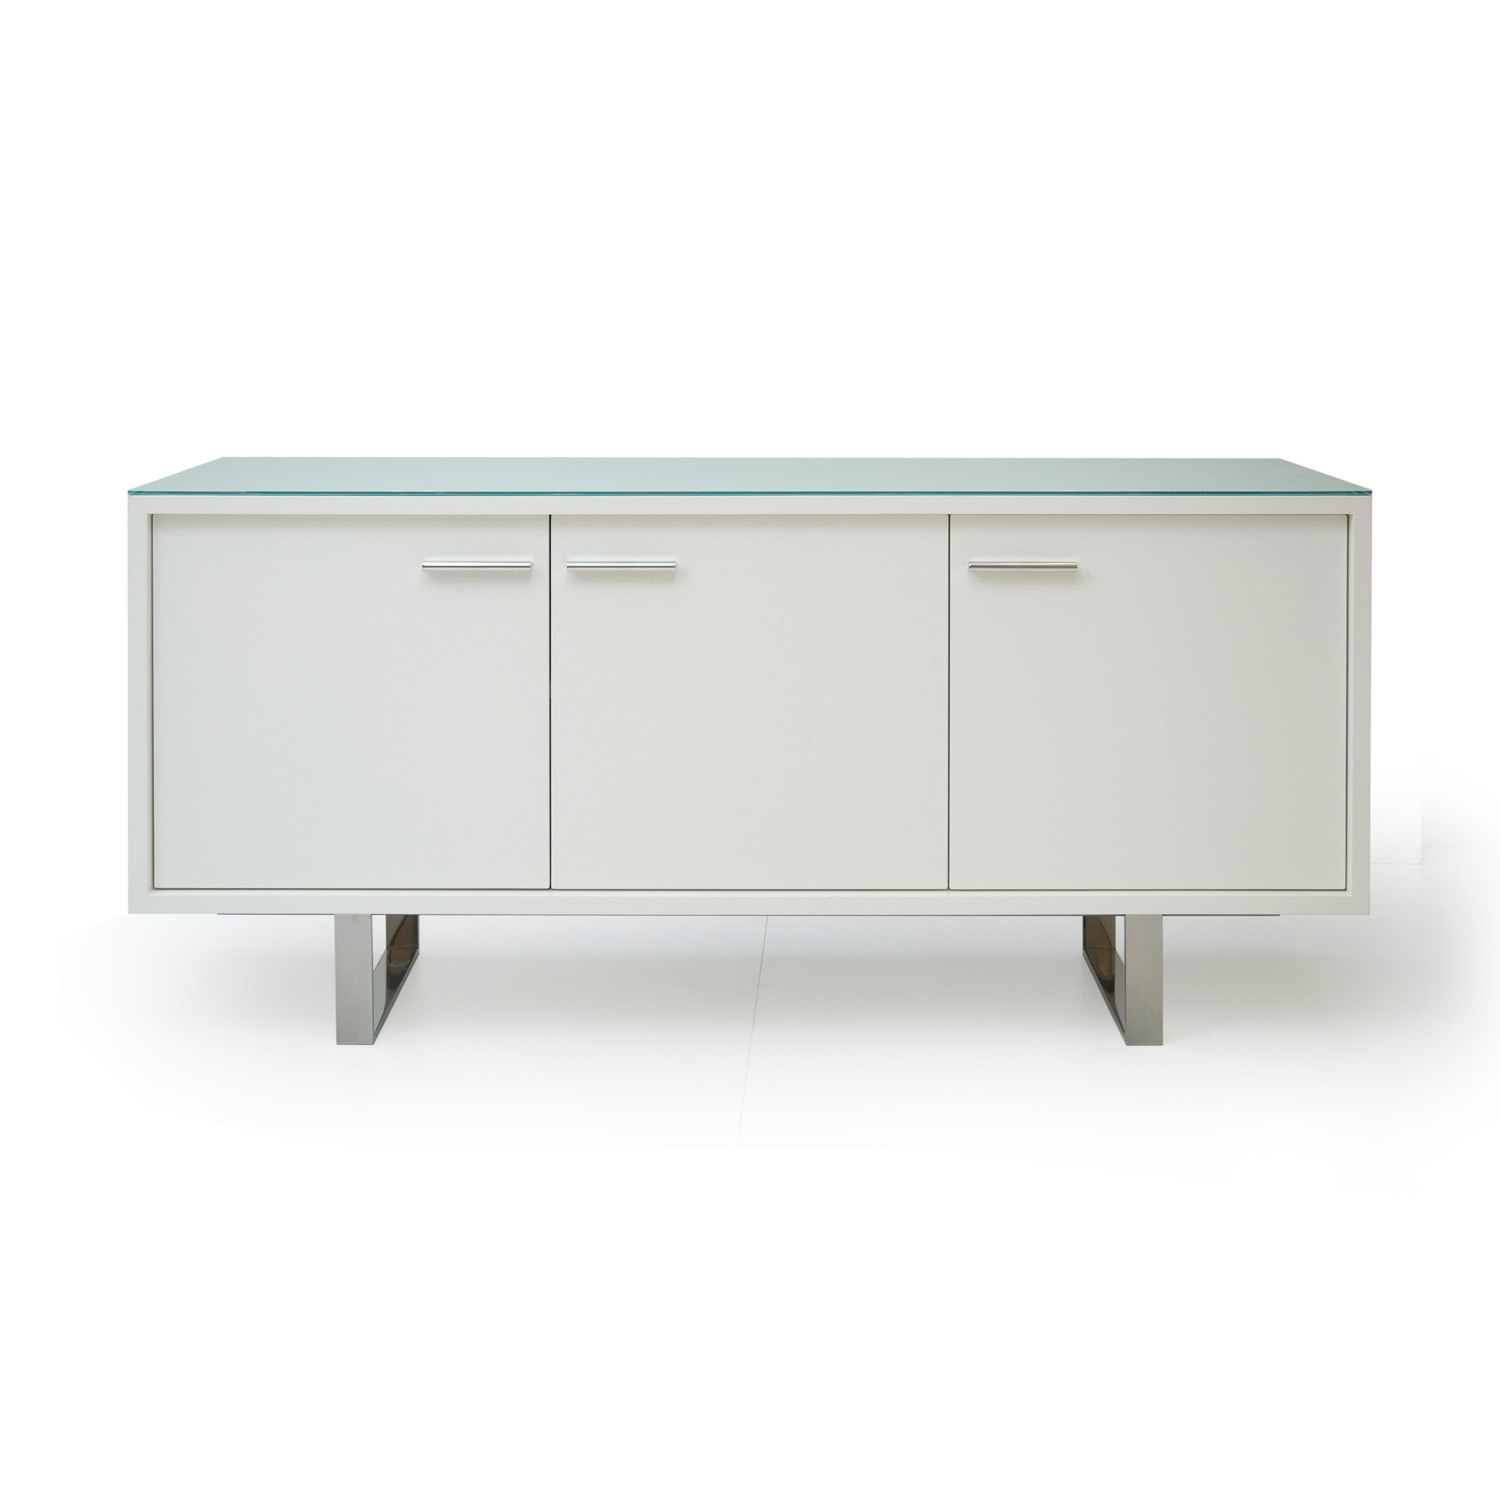 Series 2 Credenza - 3 Door Unit